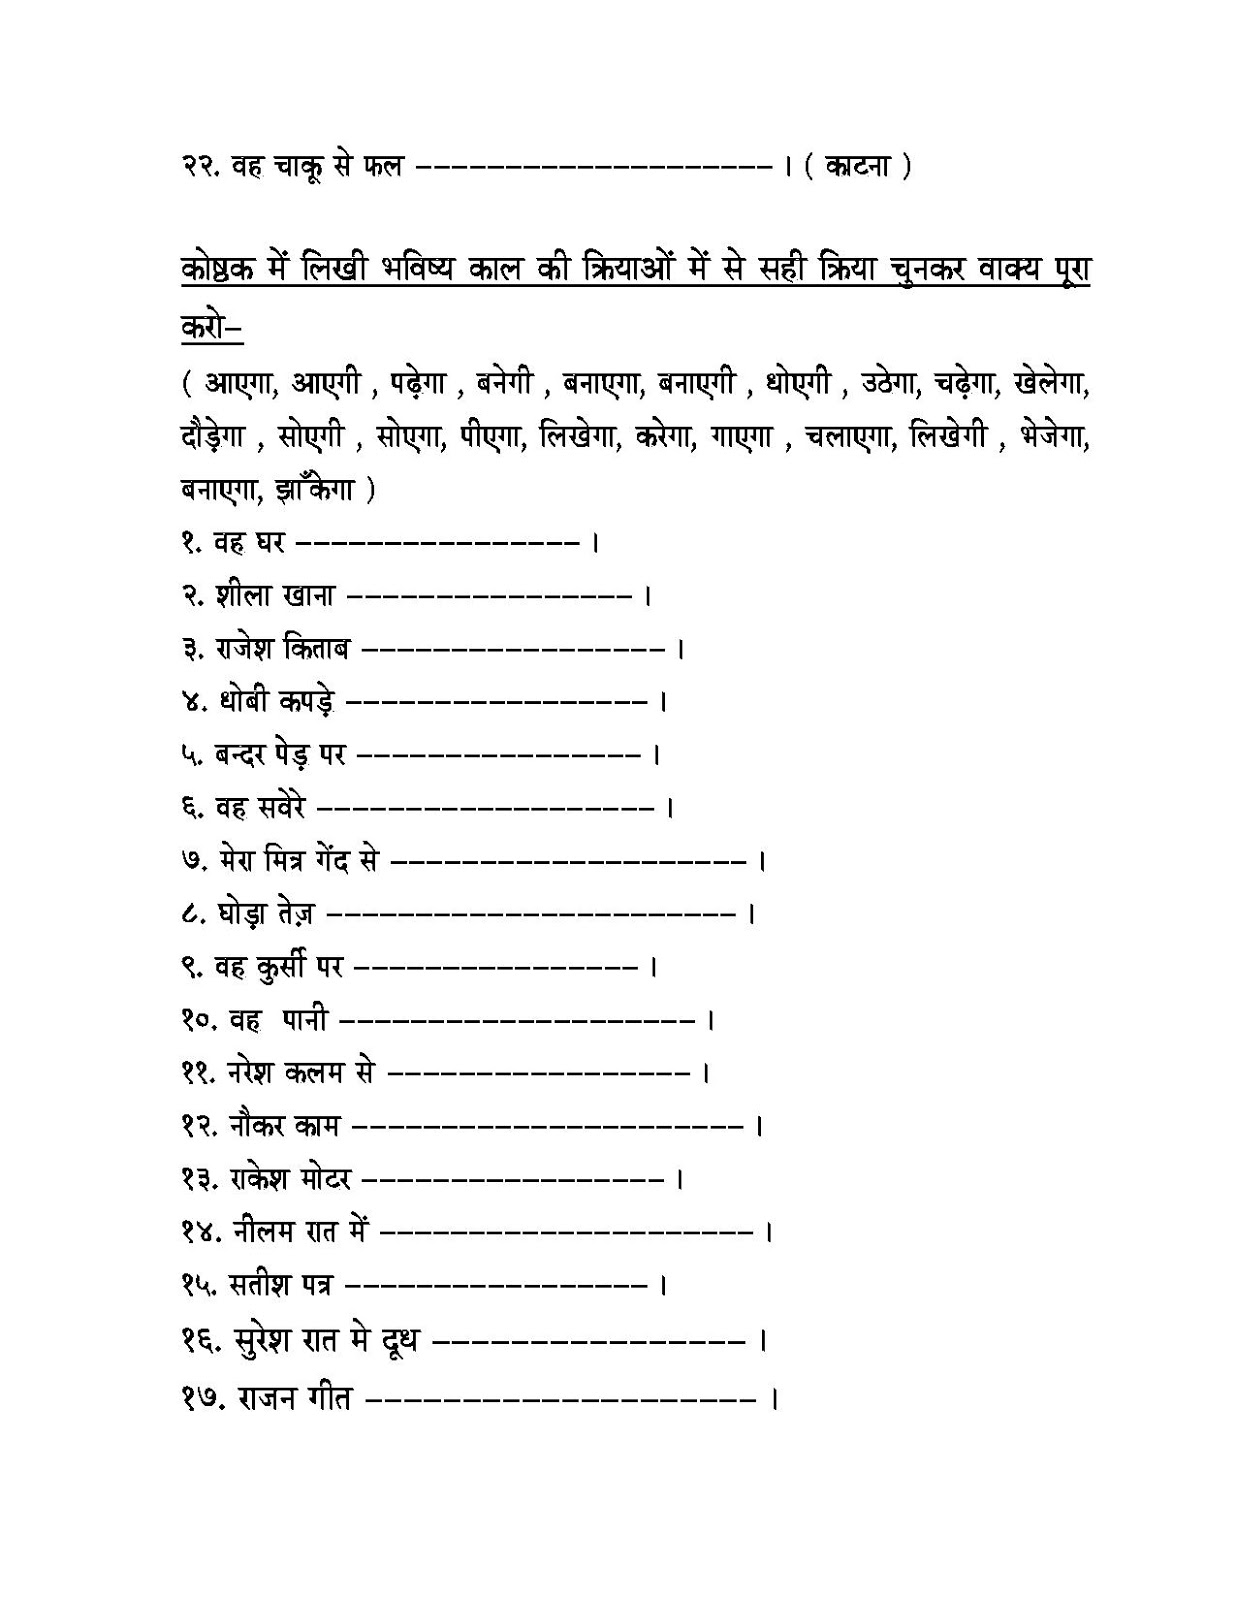 Hindi Grammar Work Sheet Collection For Classes 5 6 7 Amp 8 Tenses Work Sheets For Classes 3 4